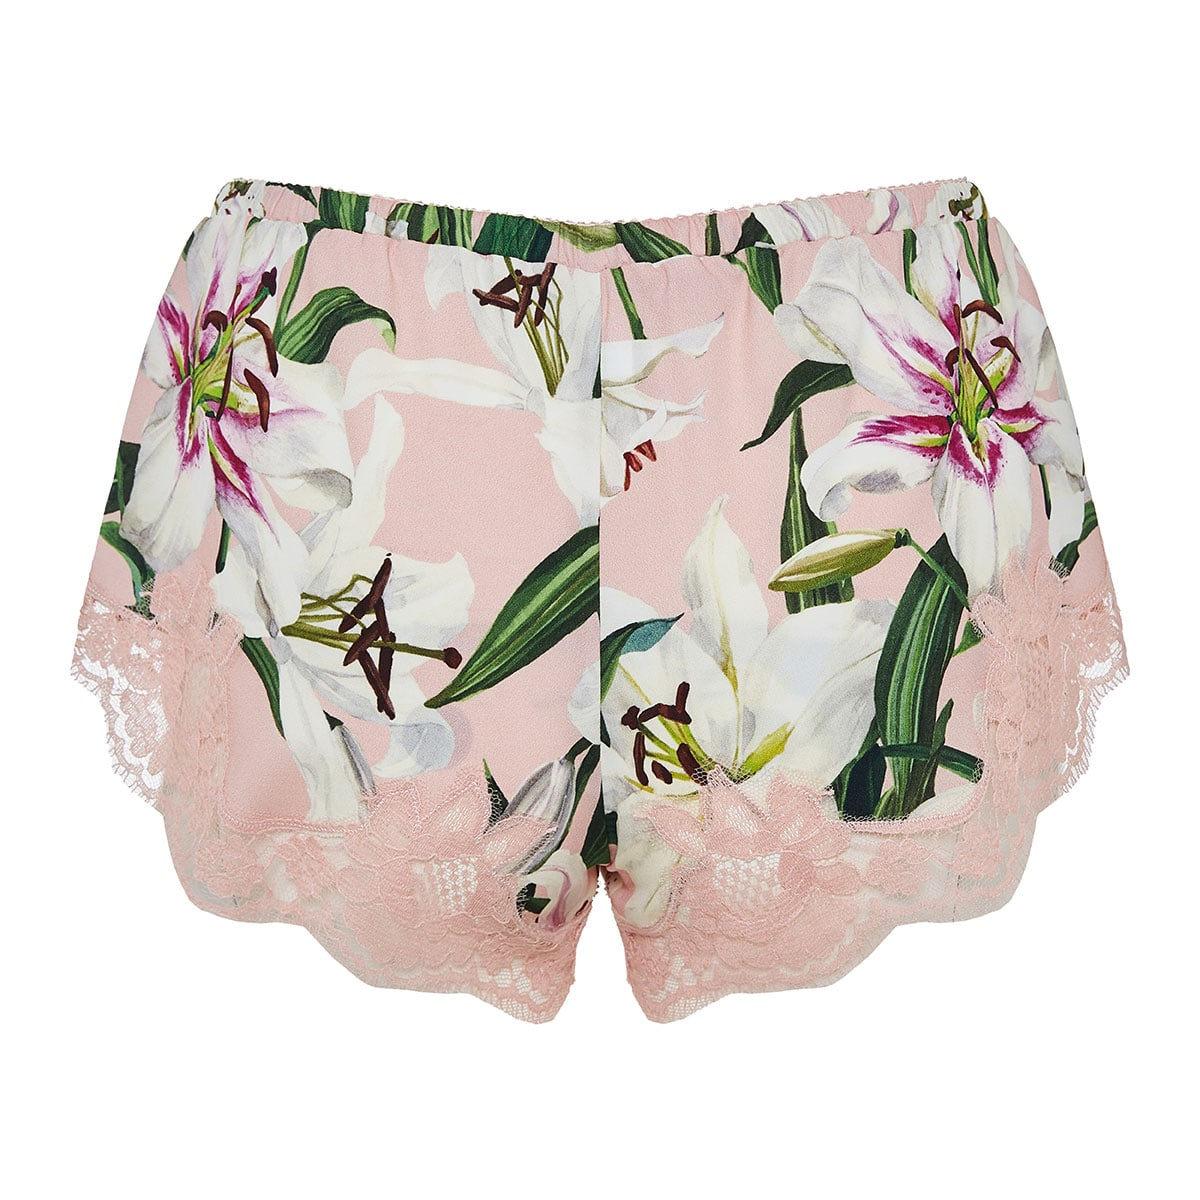 Lily-print lingerie shorts